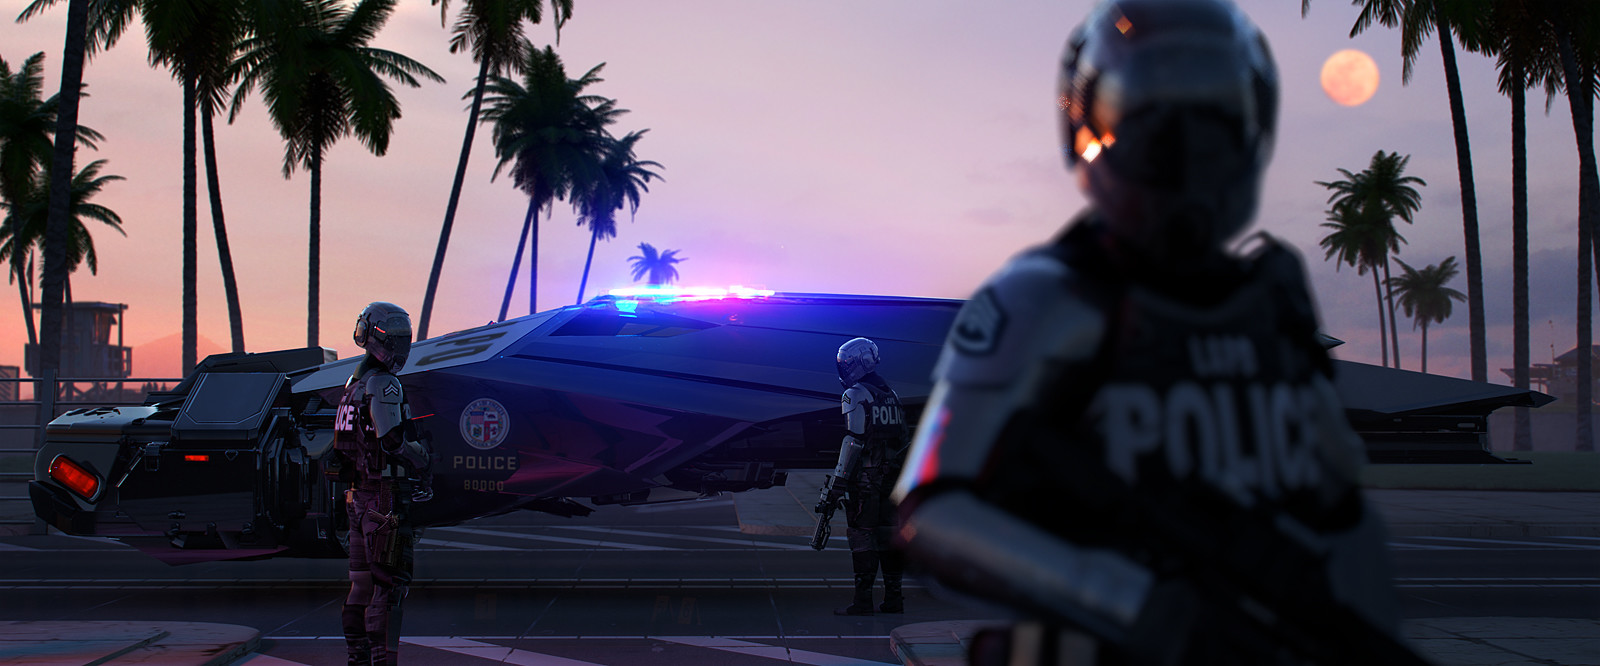 Images: A Collection Of Sci-Fi Concept Art From Anthony Eftekhari